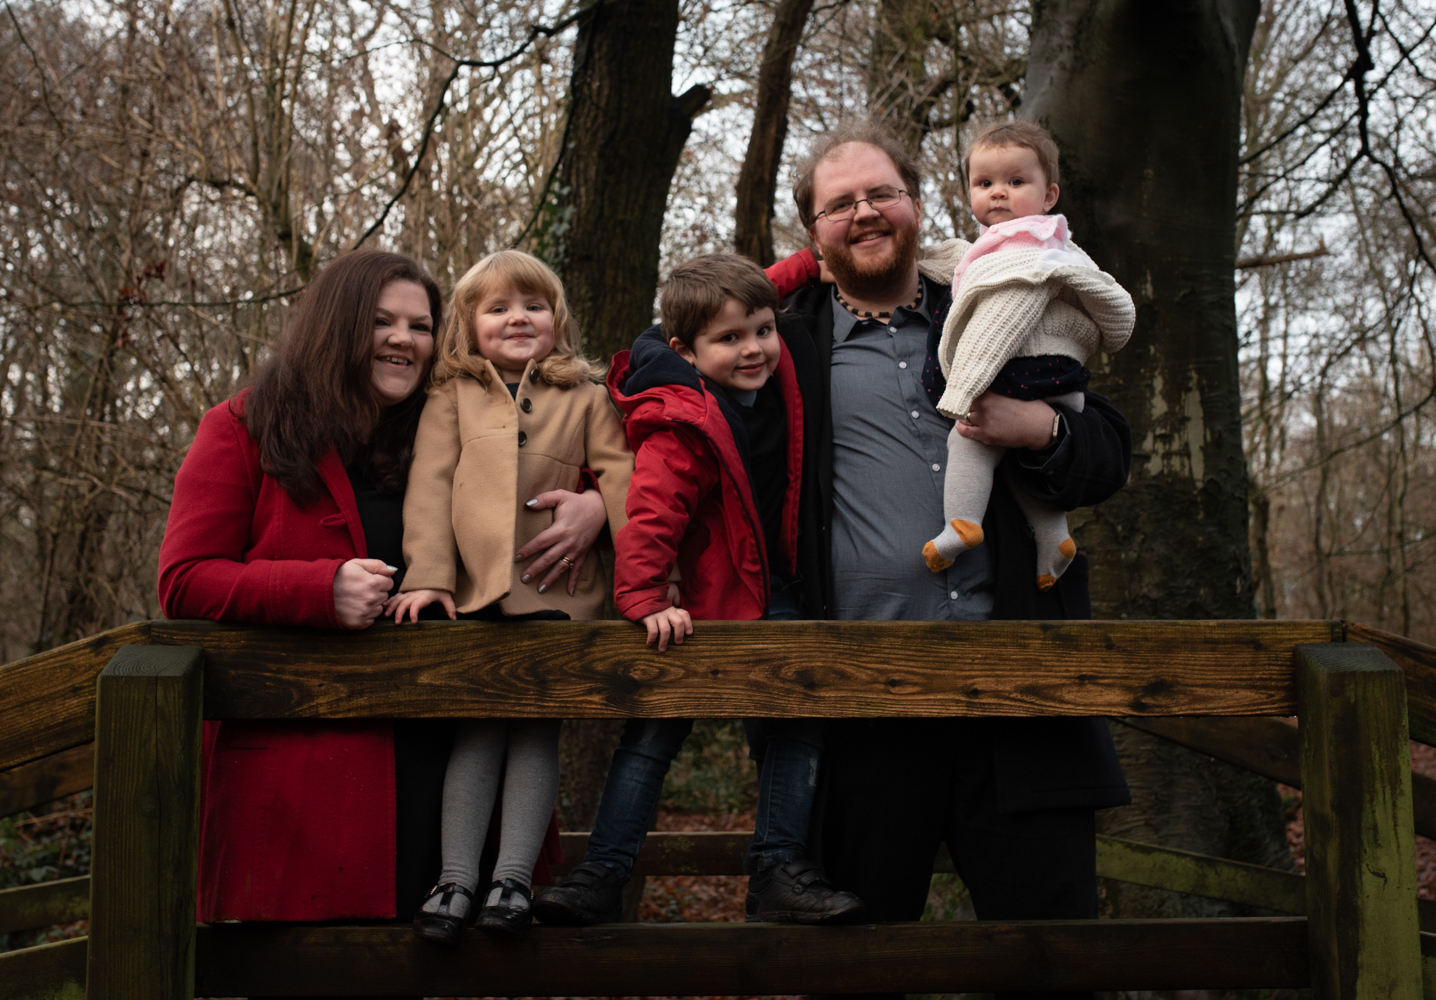 Nice family group photograph in the woods